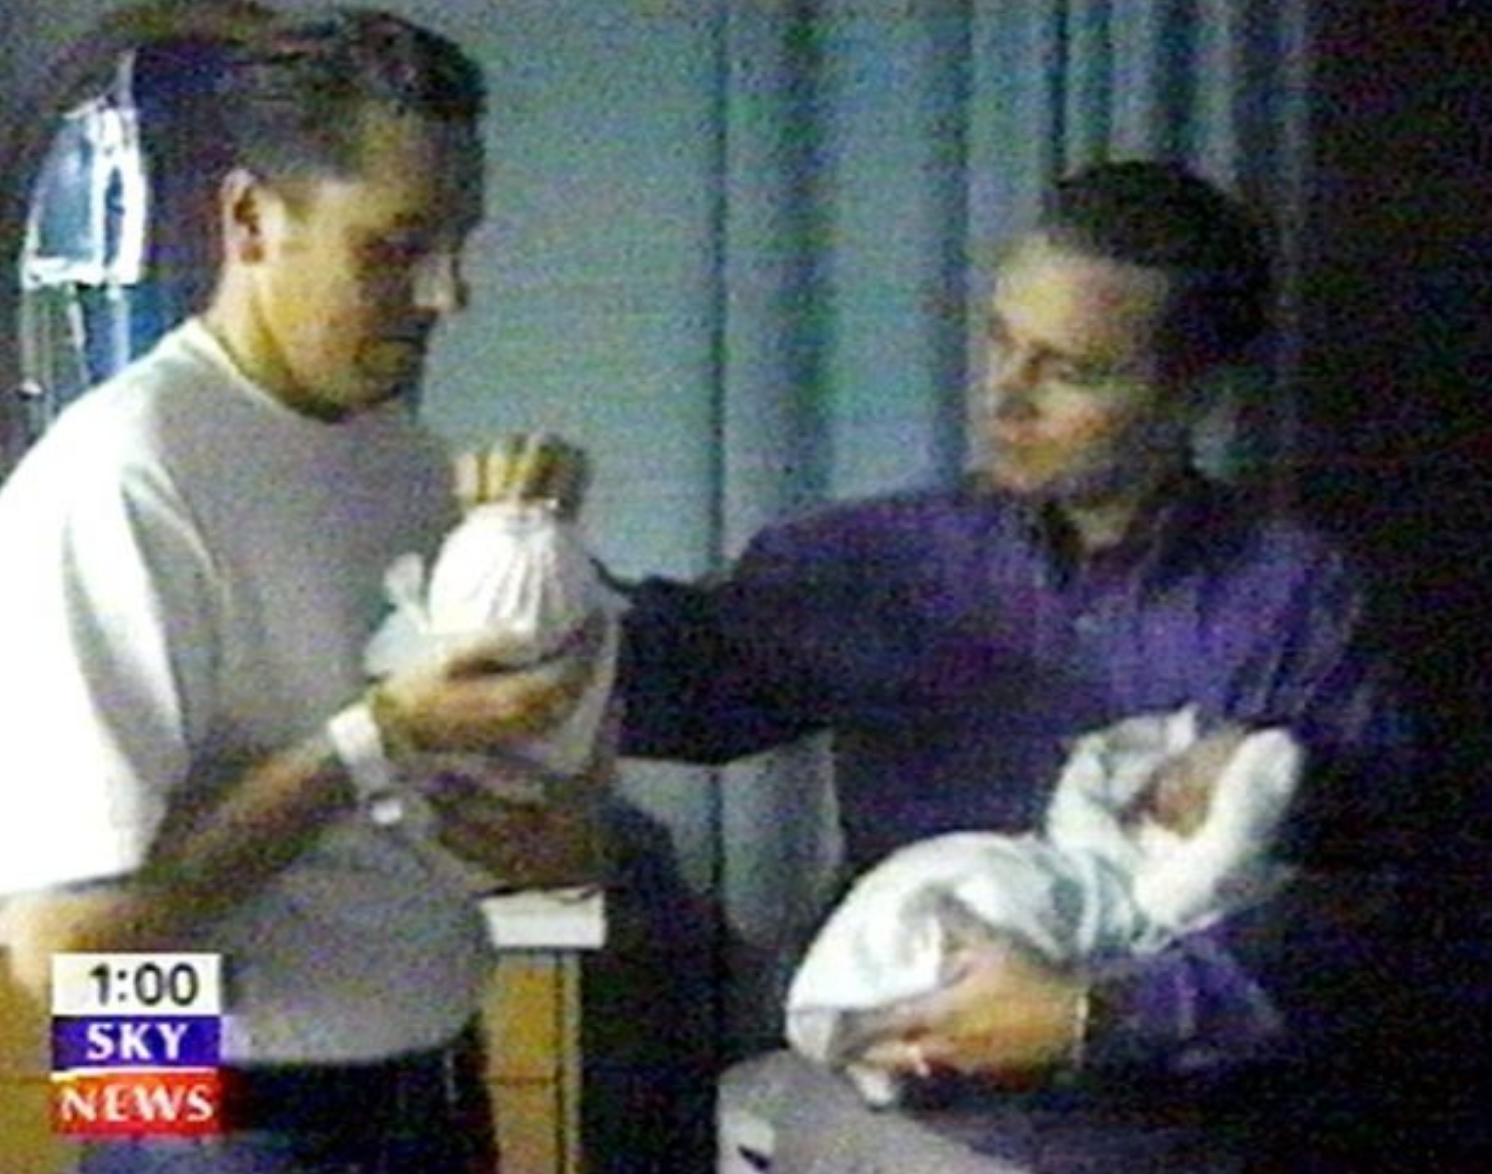 The family received widespread media attention when they became Britain's first gay dads (Credit: Sky News)